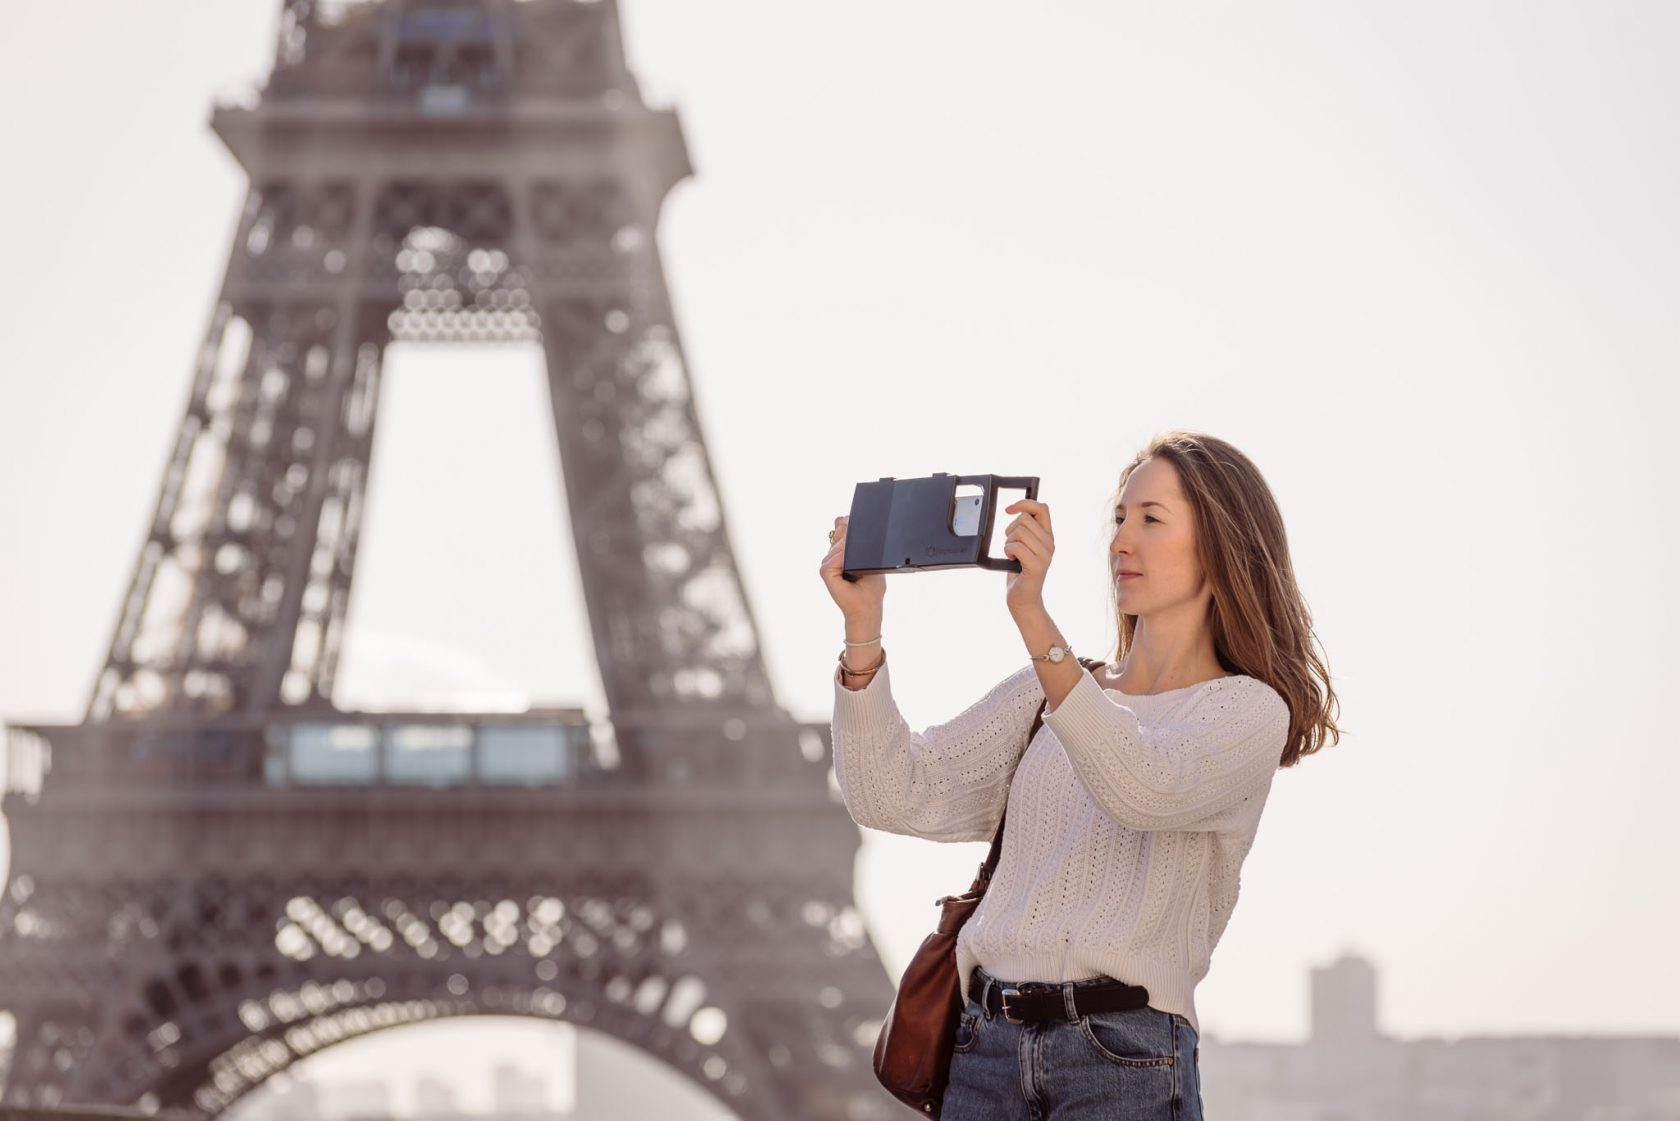 lifestyle product photoshoot in Paris France for iOgrapher, model in front of the Eiffel tower holding iPhone filming case